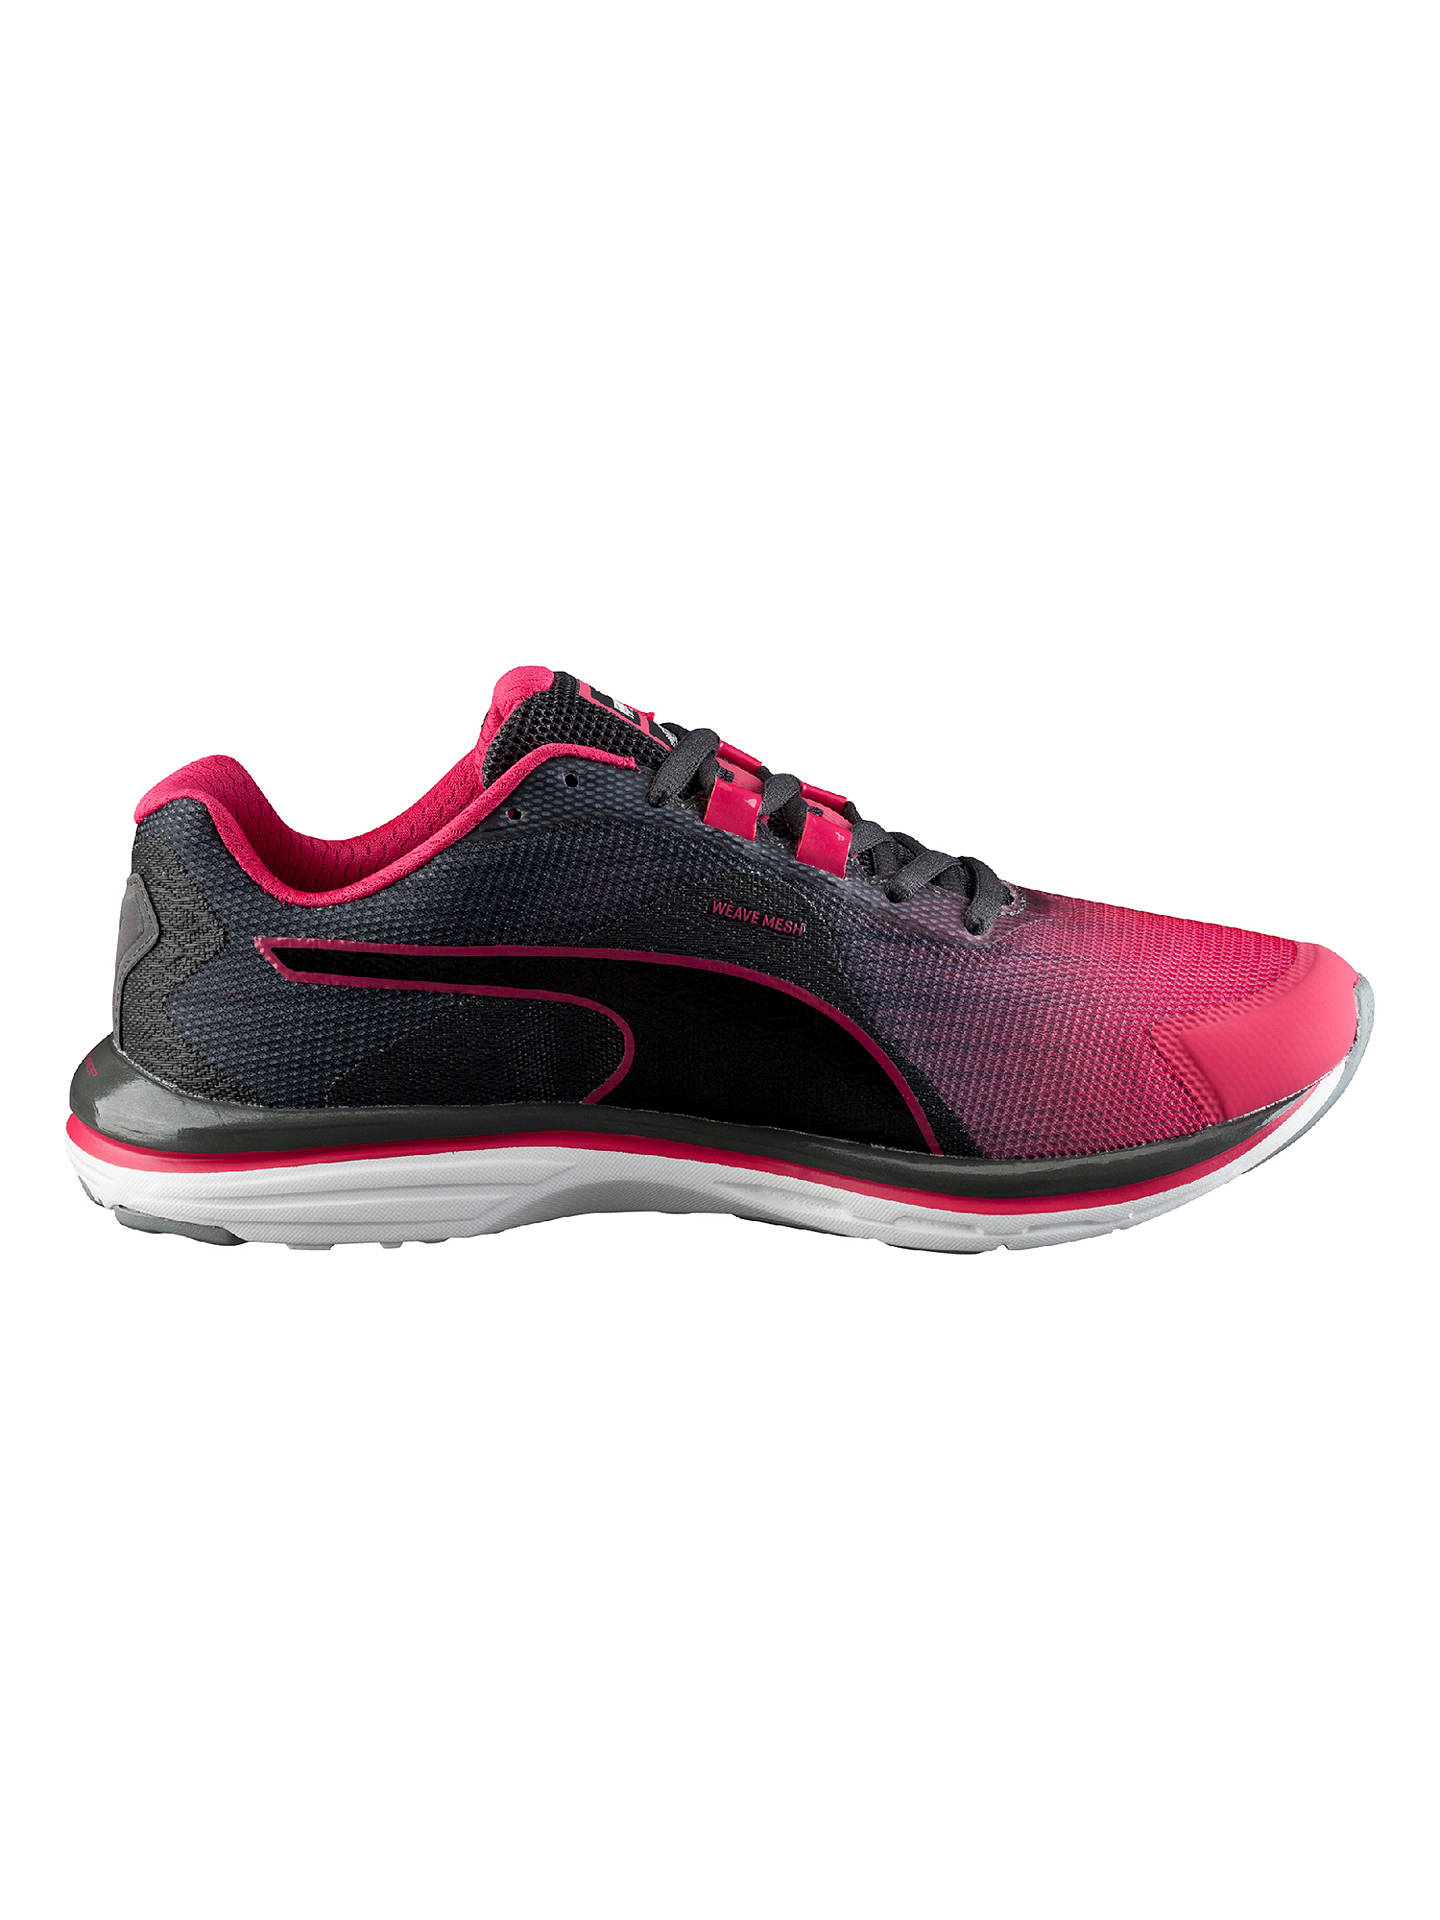 BuyPuma FAAS 500 v4 Women s Running Shoes 31940c6241